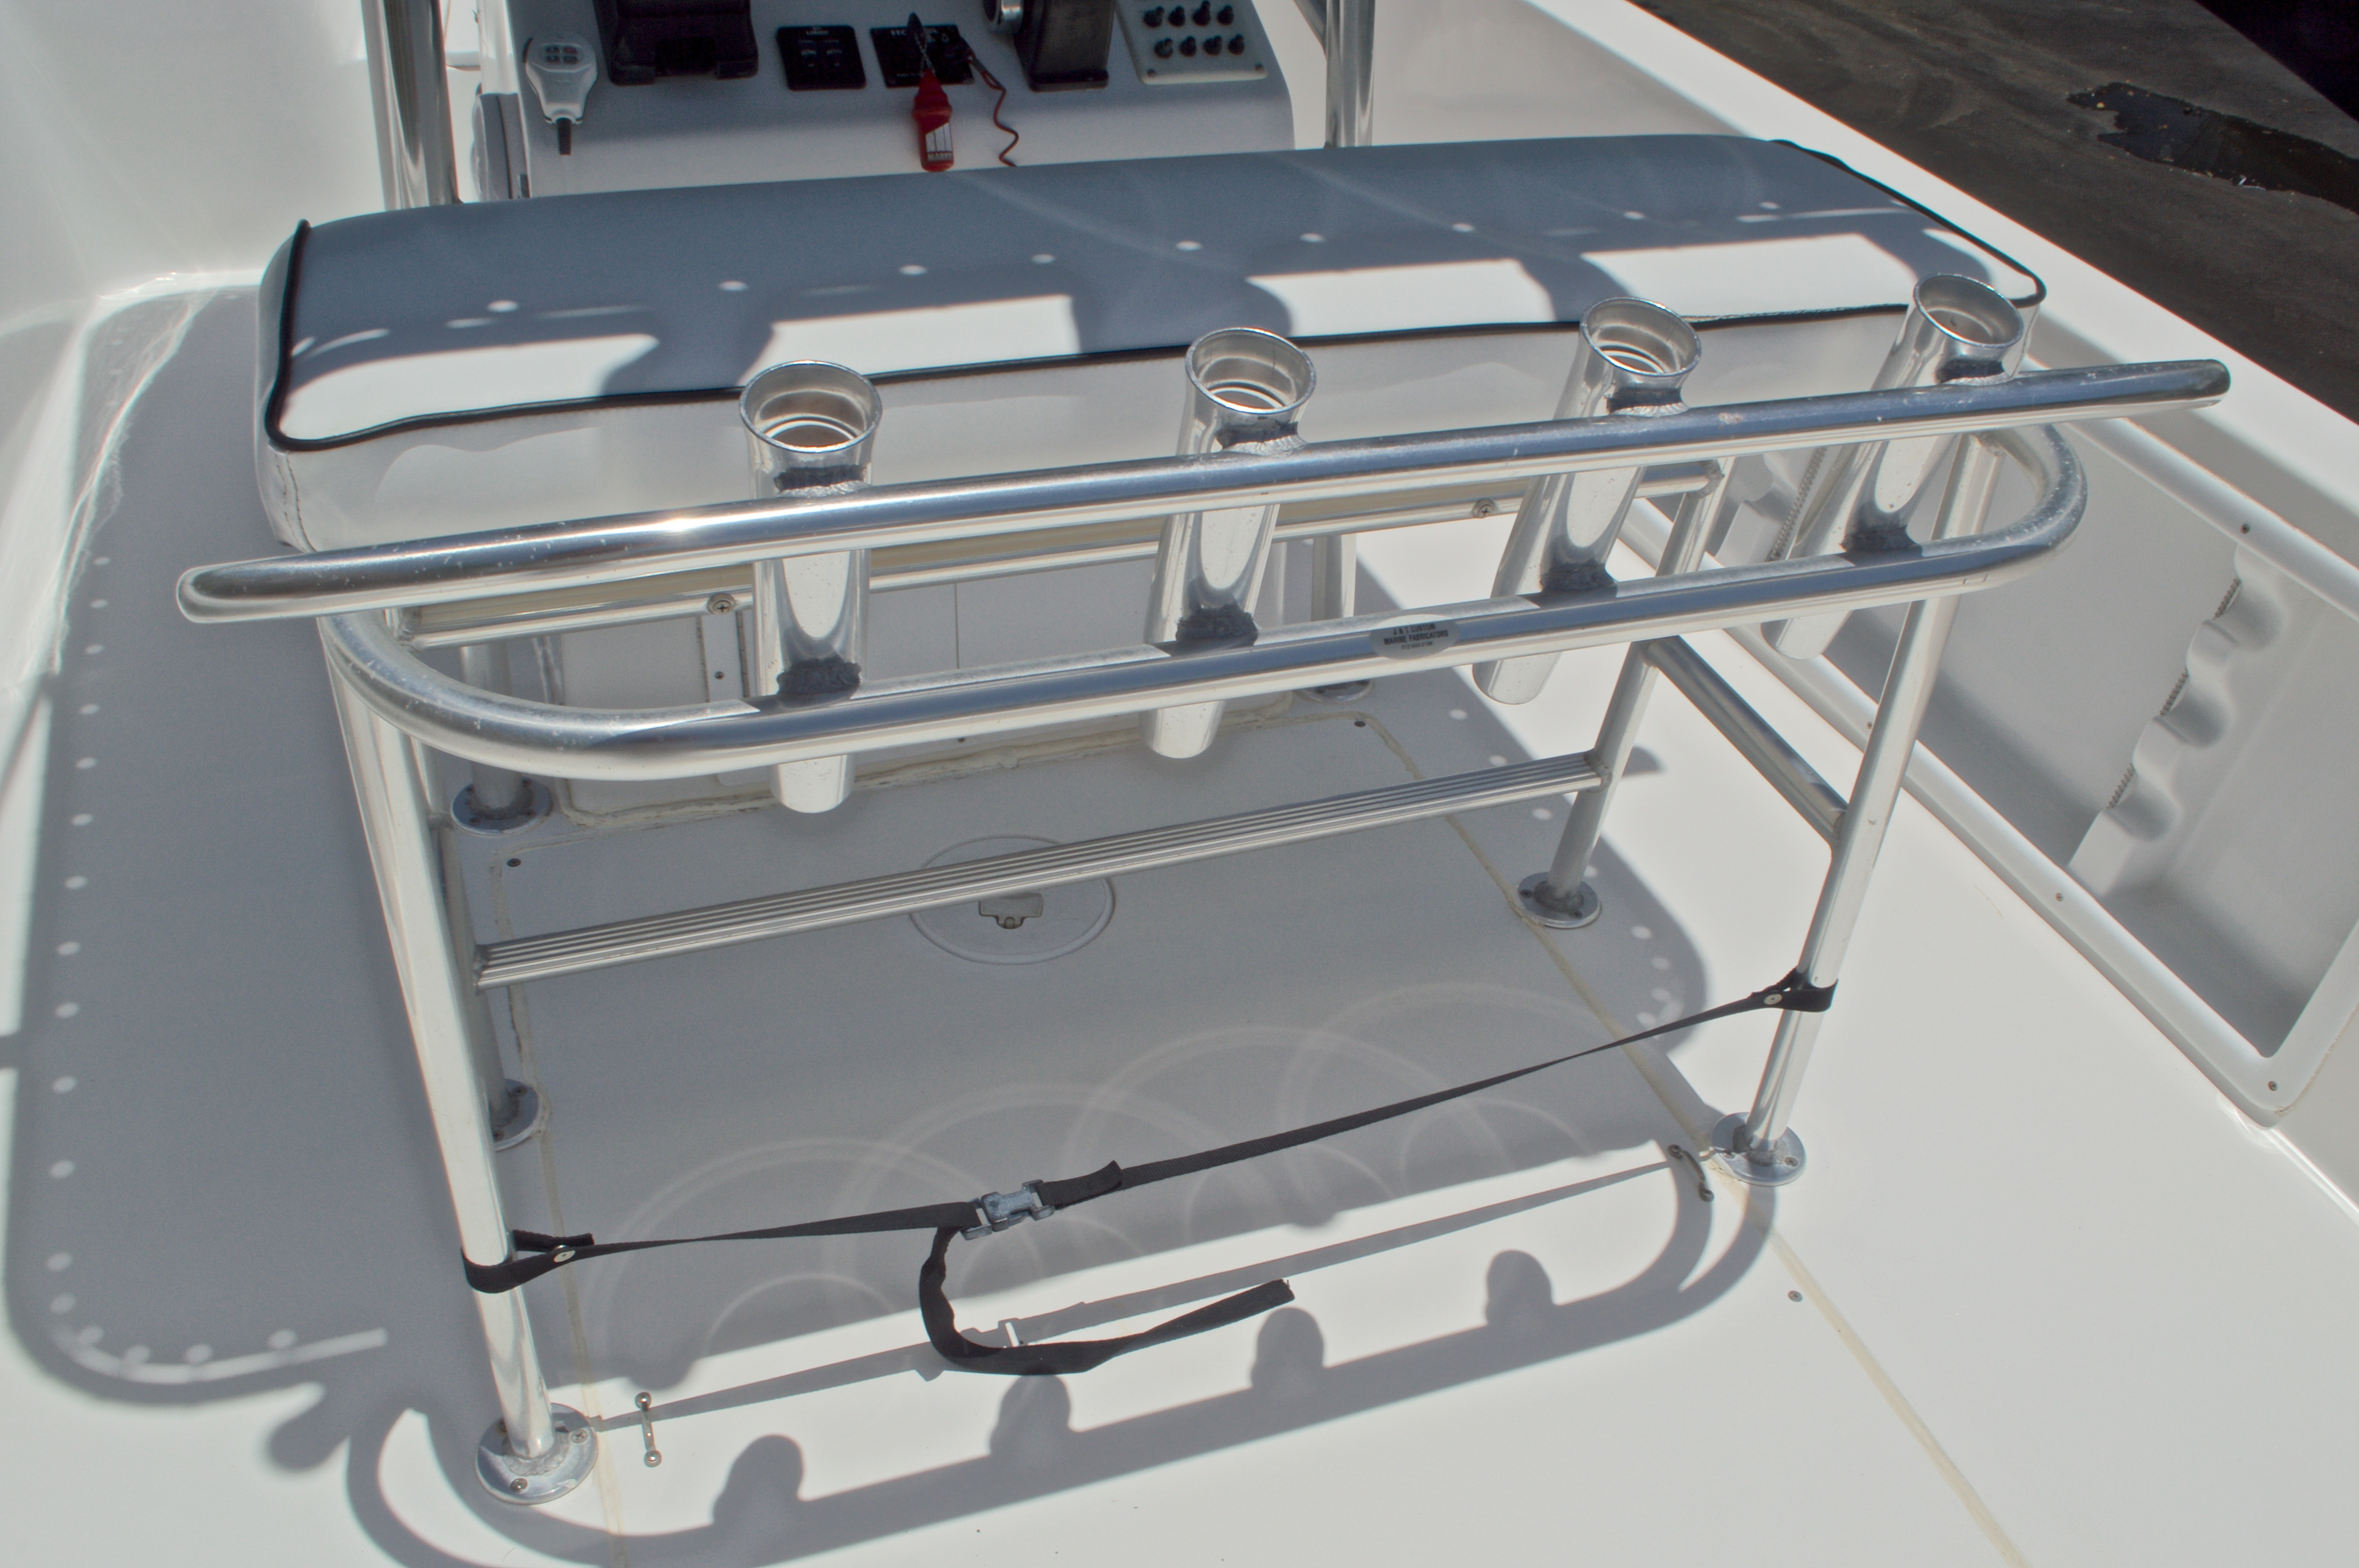 Thumbnail 31 for Used 2005 Sea Chaser 245 Bay Runner LX boat for sale in West Palm Beach, FL